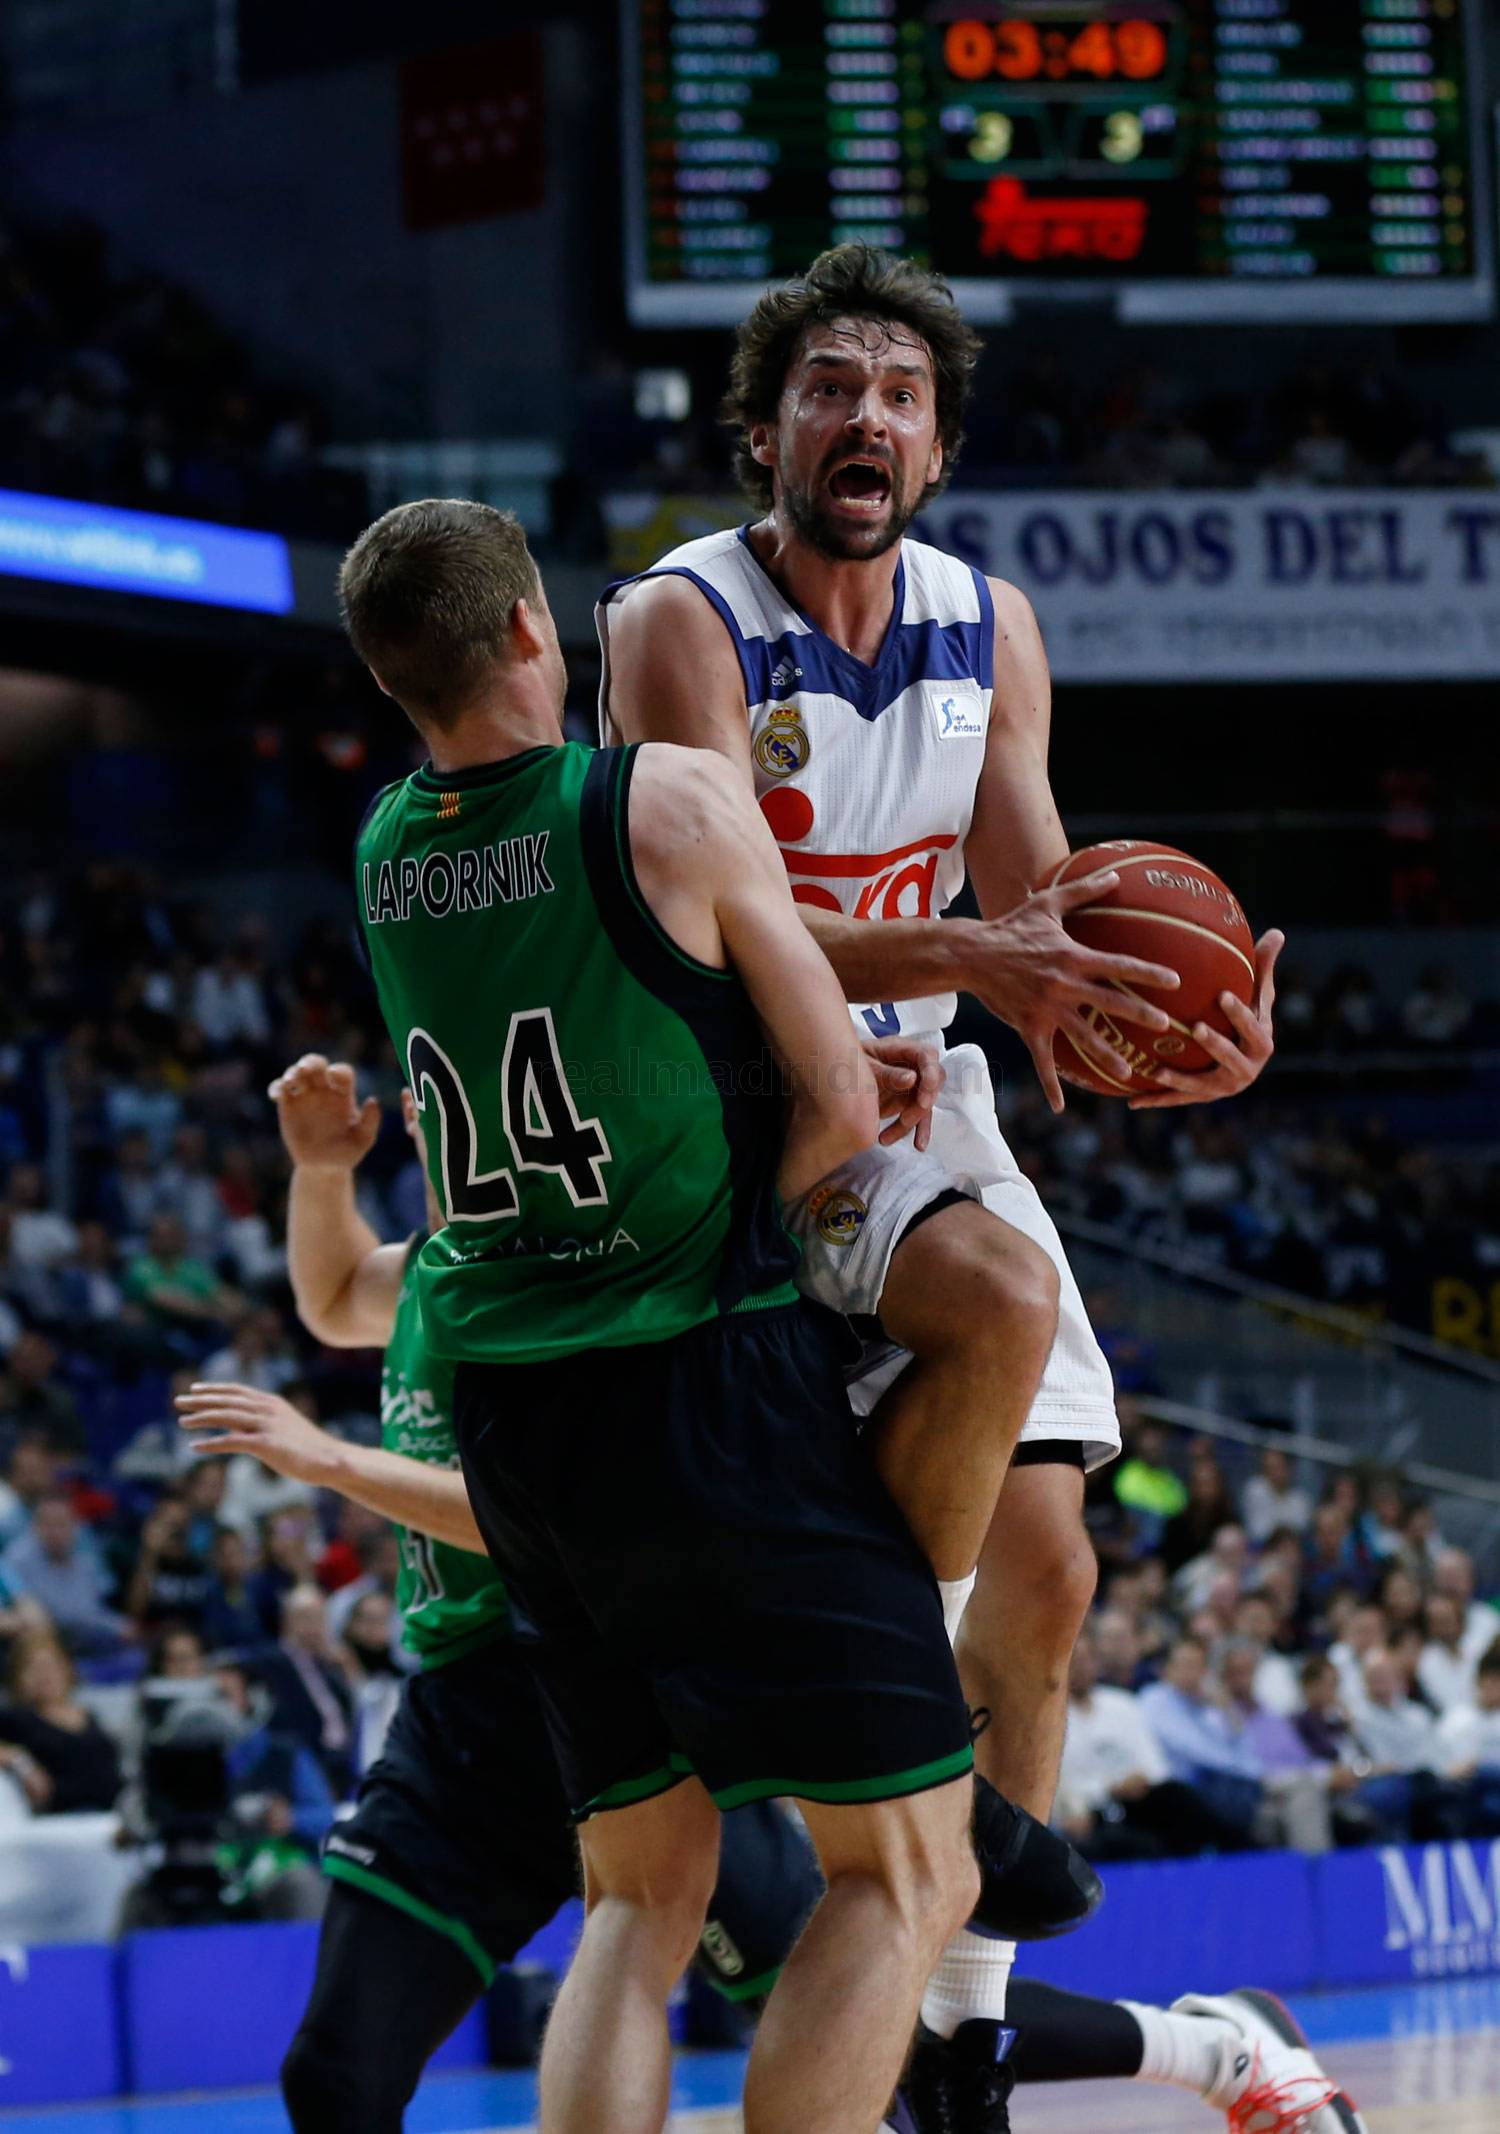 Real Madrid - Real Madrid - Divina Seguros Joventut - 11-05-2017